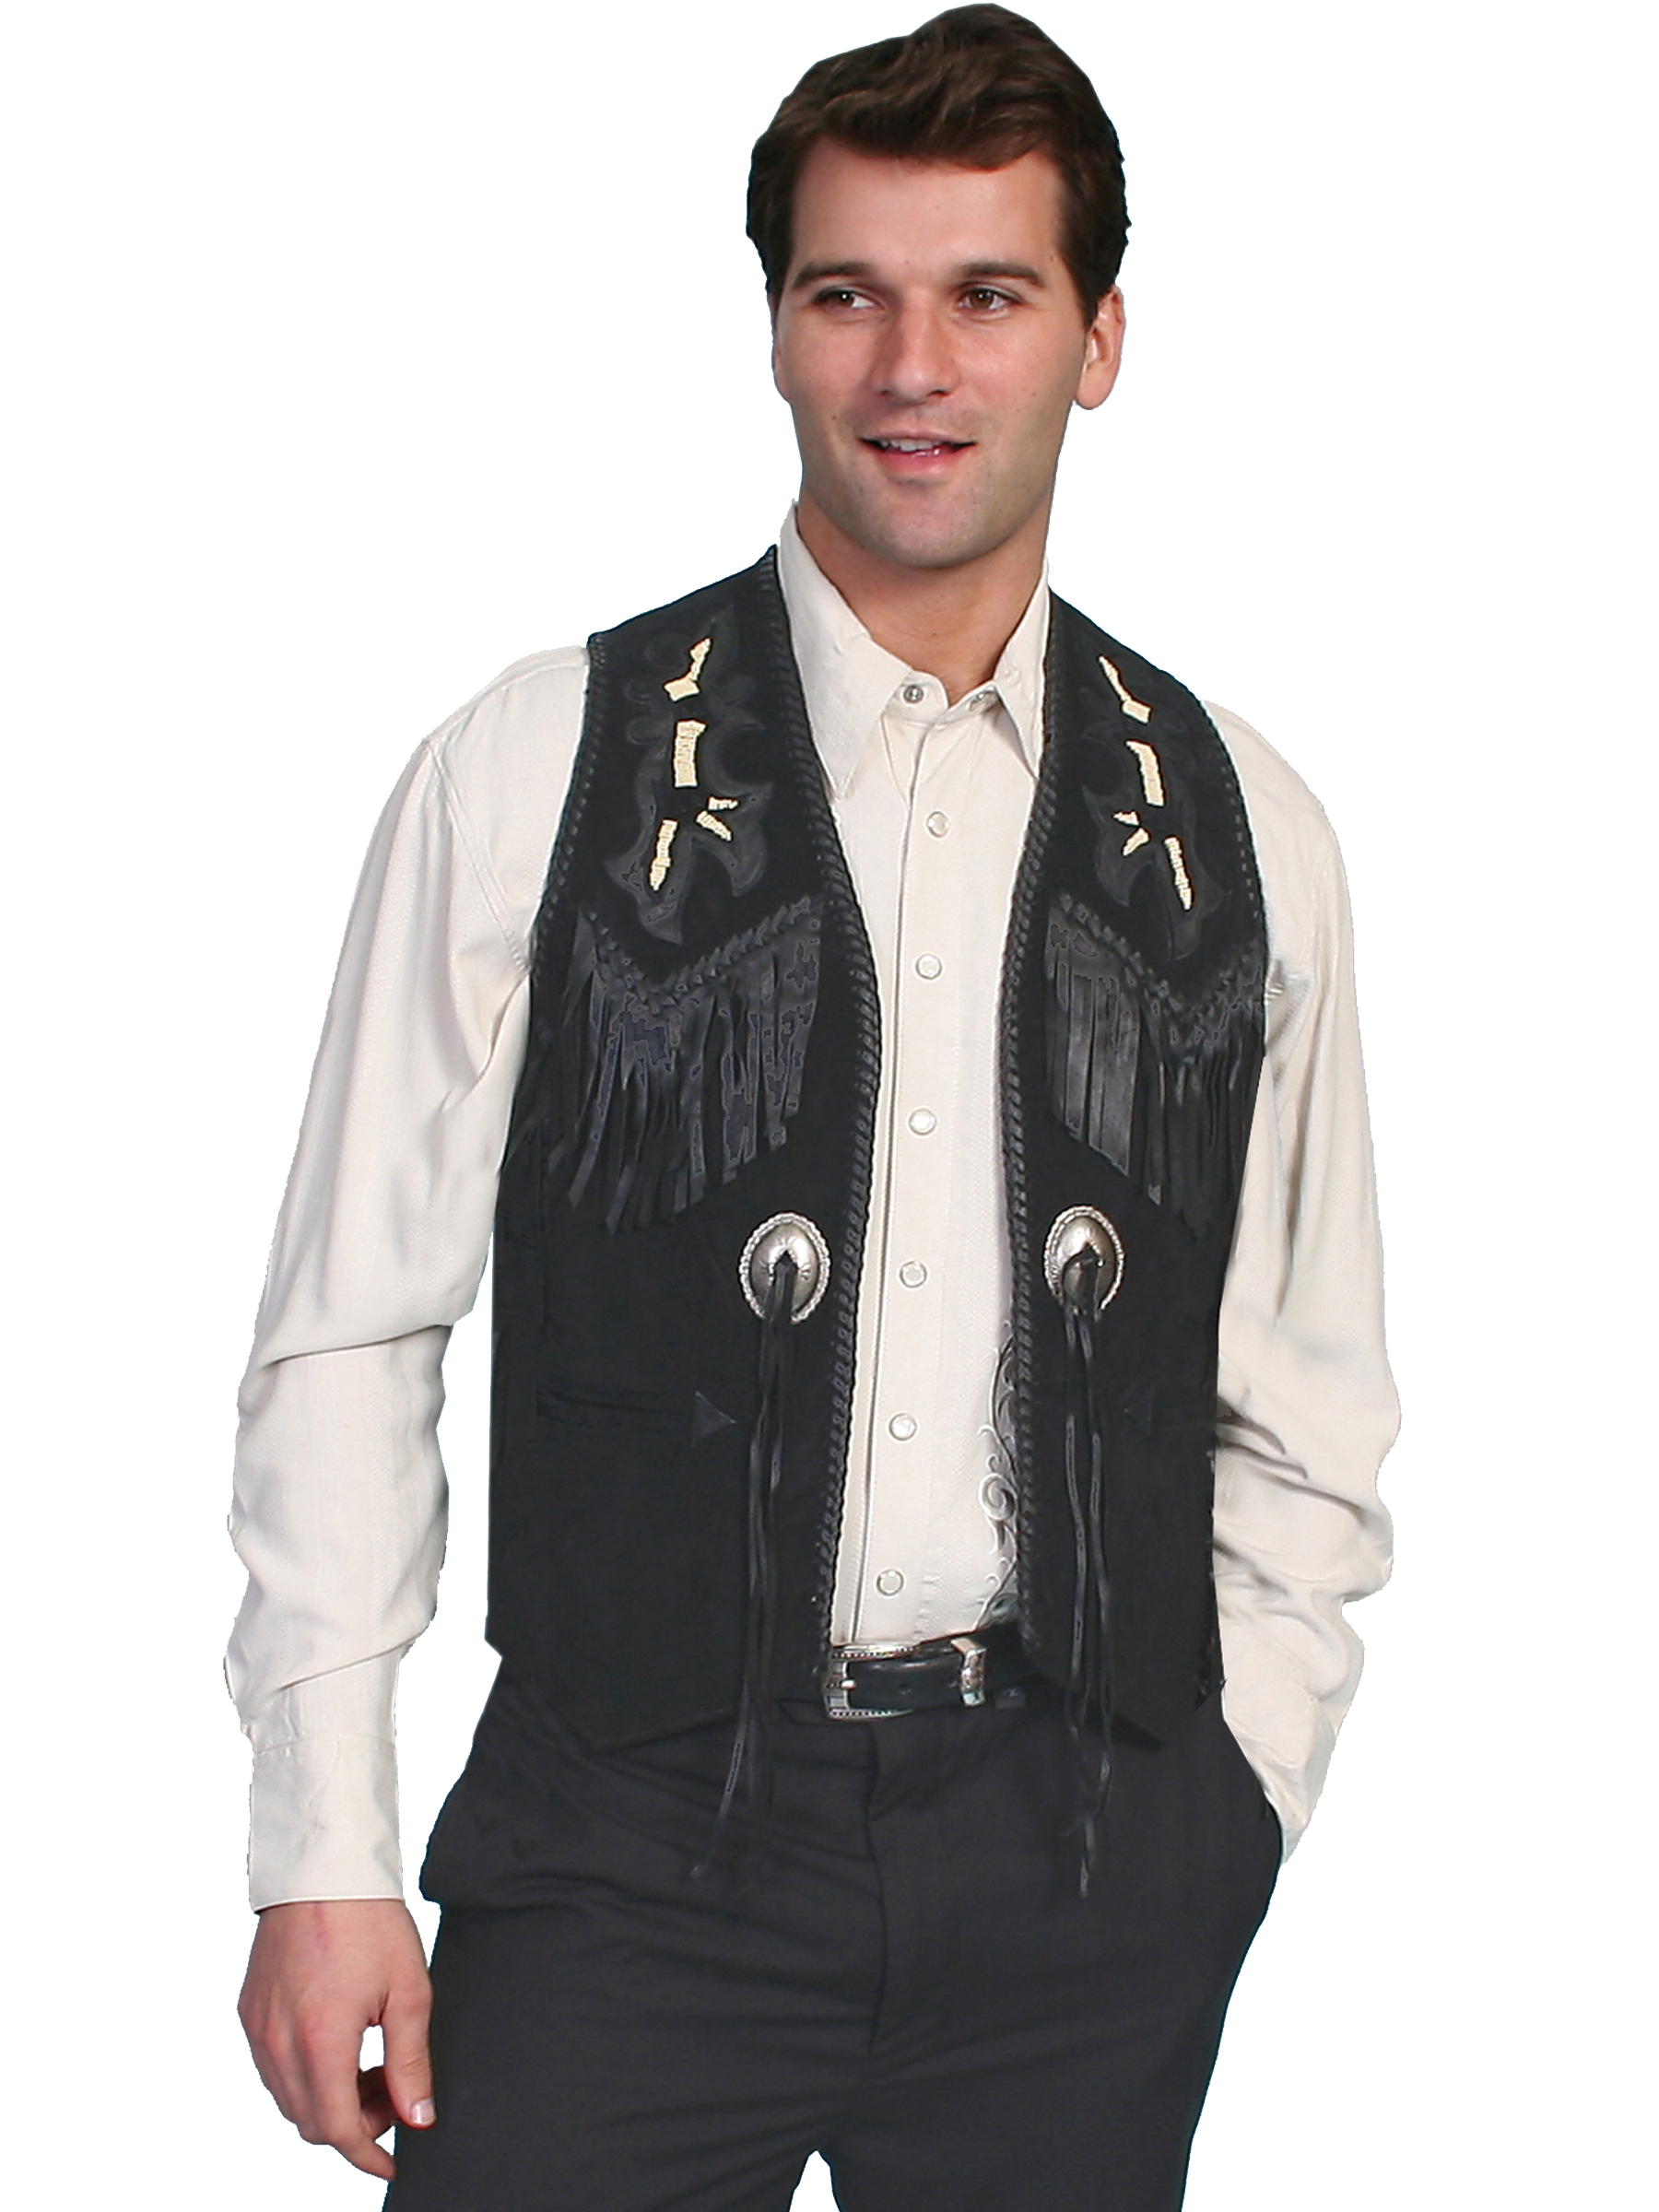 57a17694c2e Mens western vests suede leather, polyester or canvas